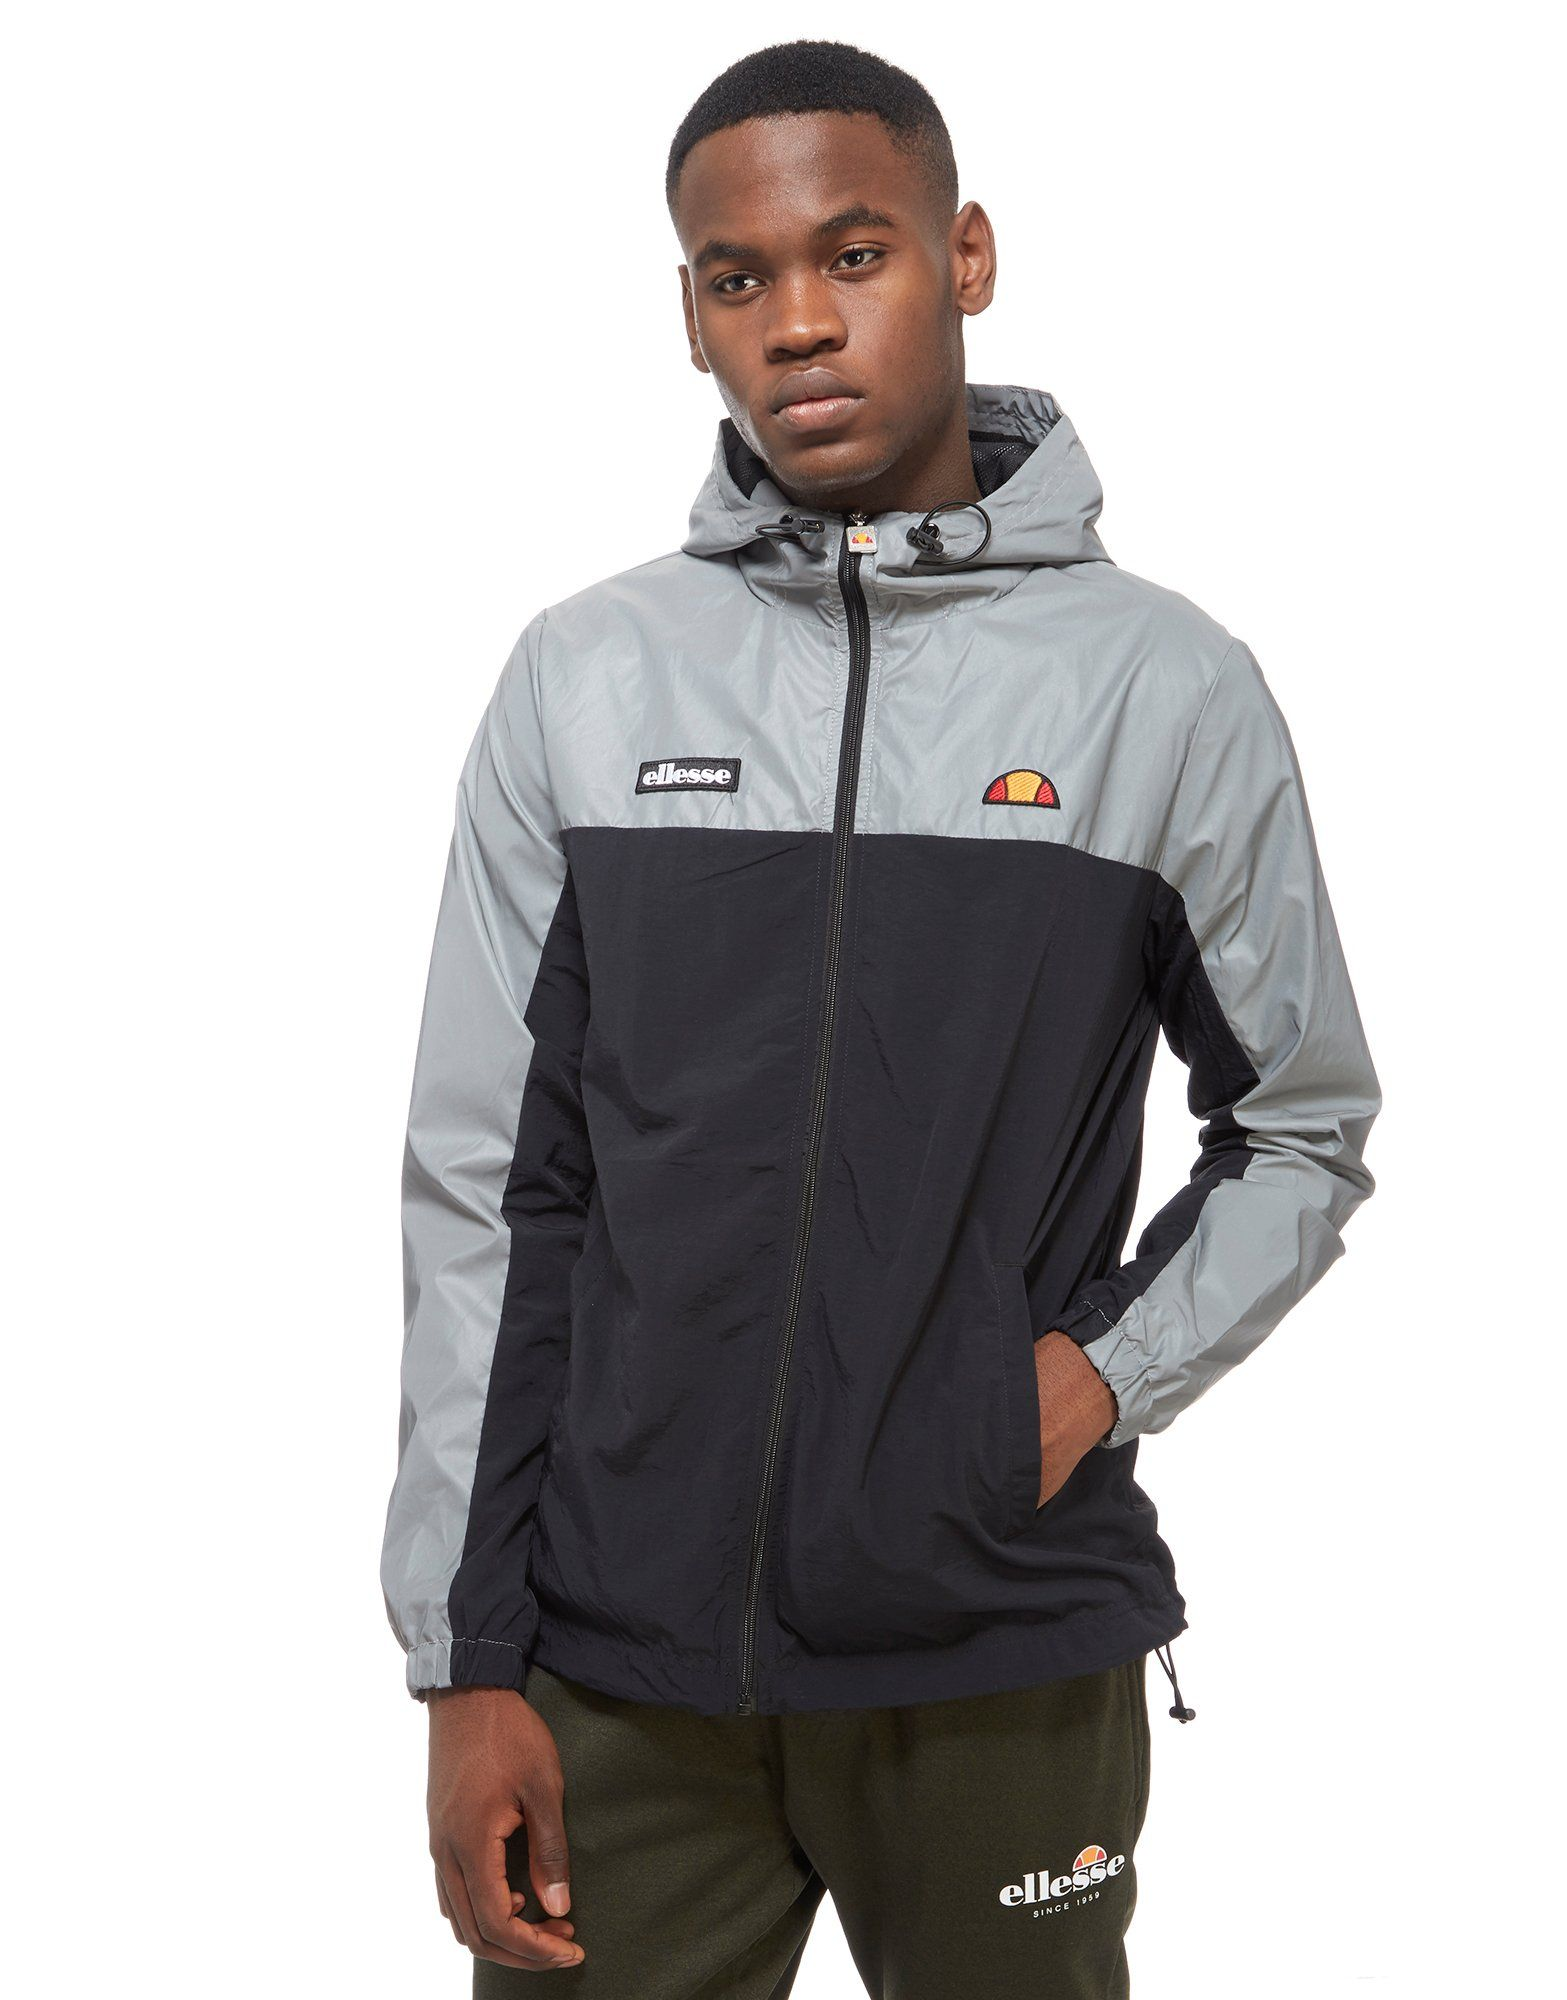 ellesse ervero reflective hooded jacket jd sports. Black Bedroom Furniture Sets. Home Design Ideas